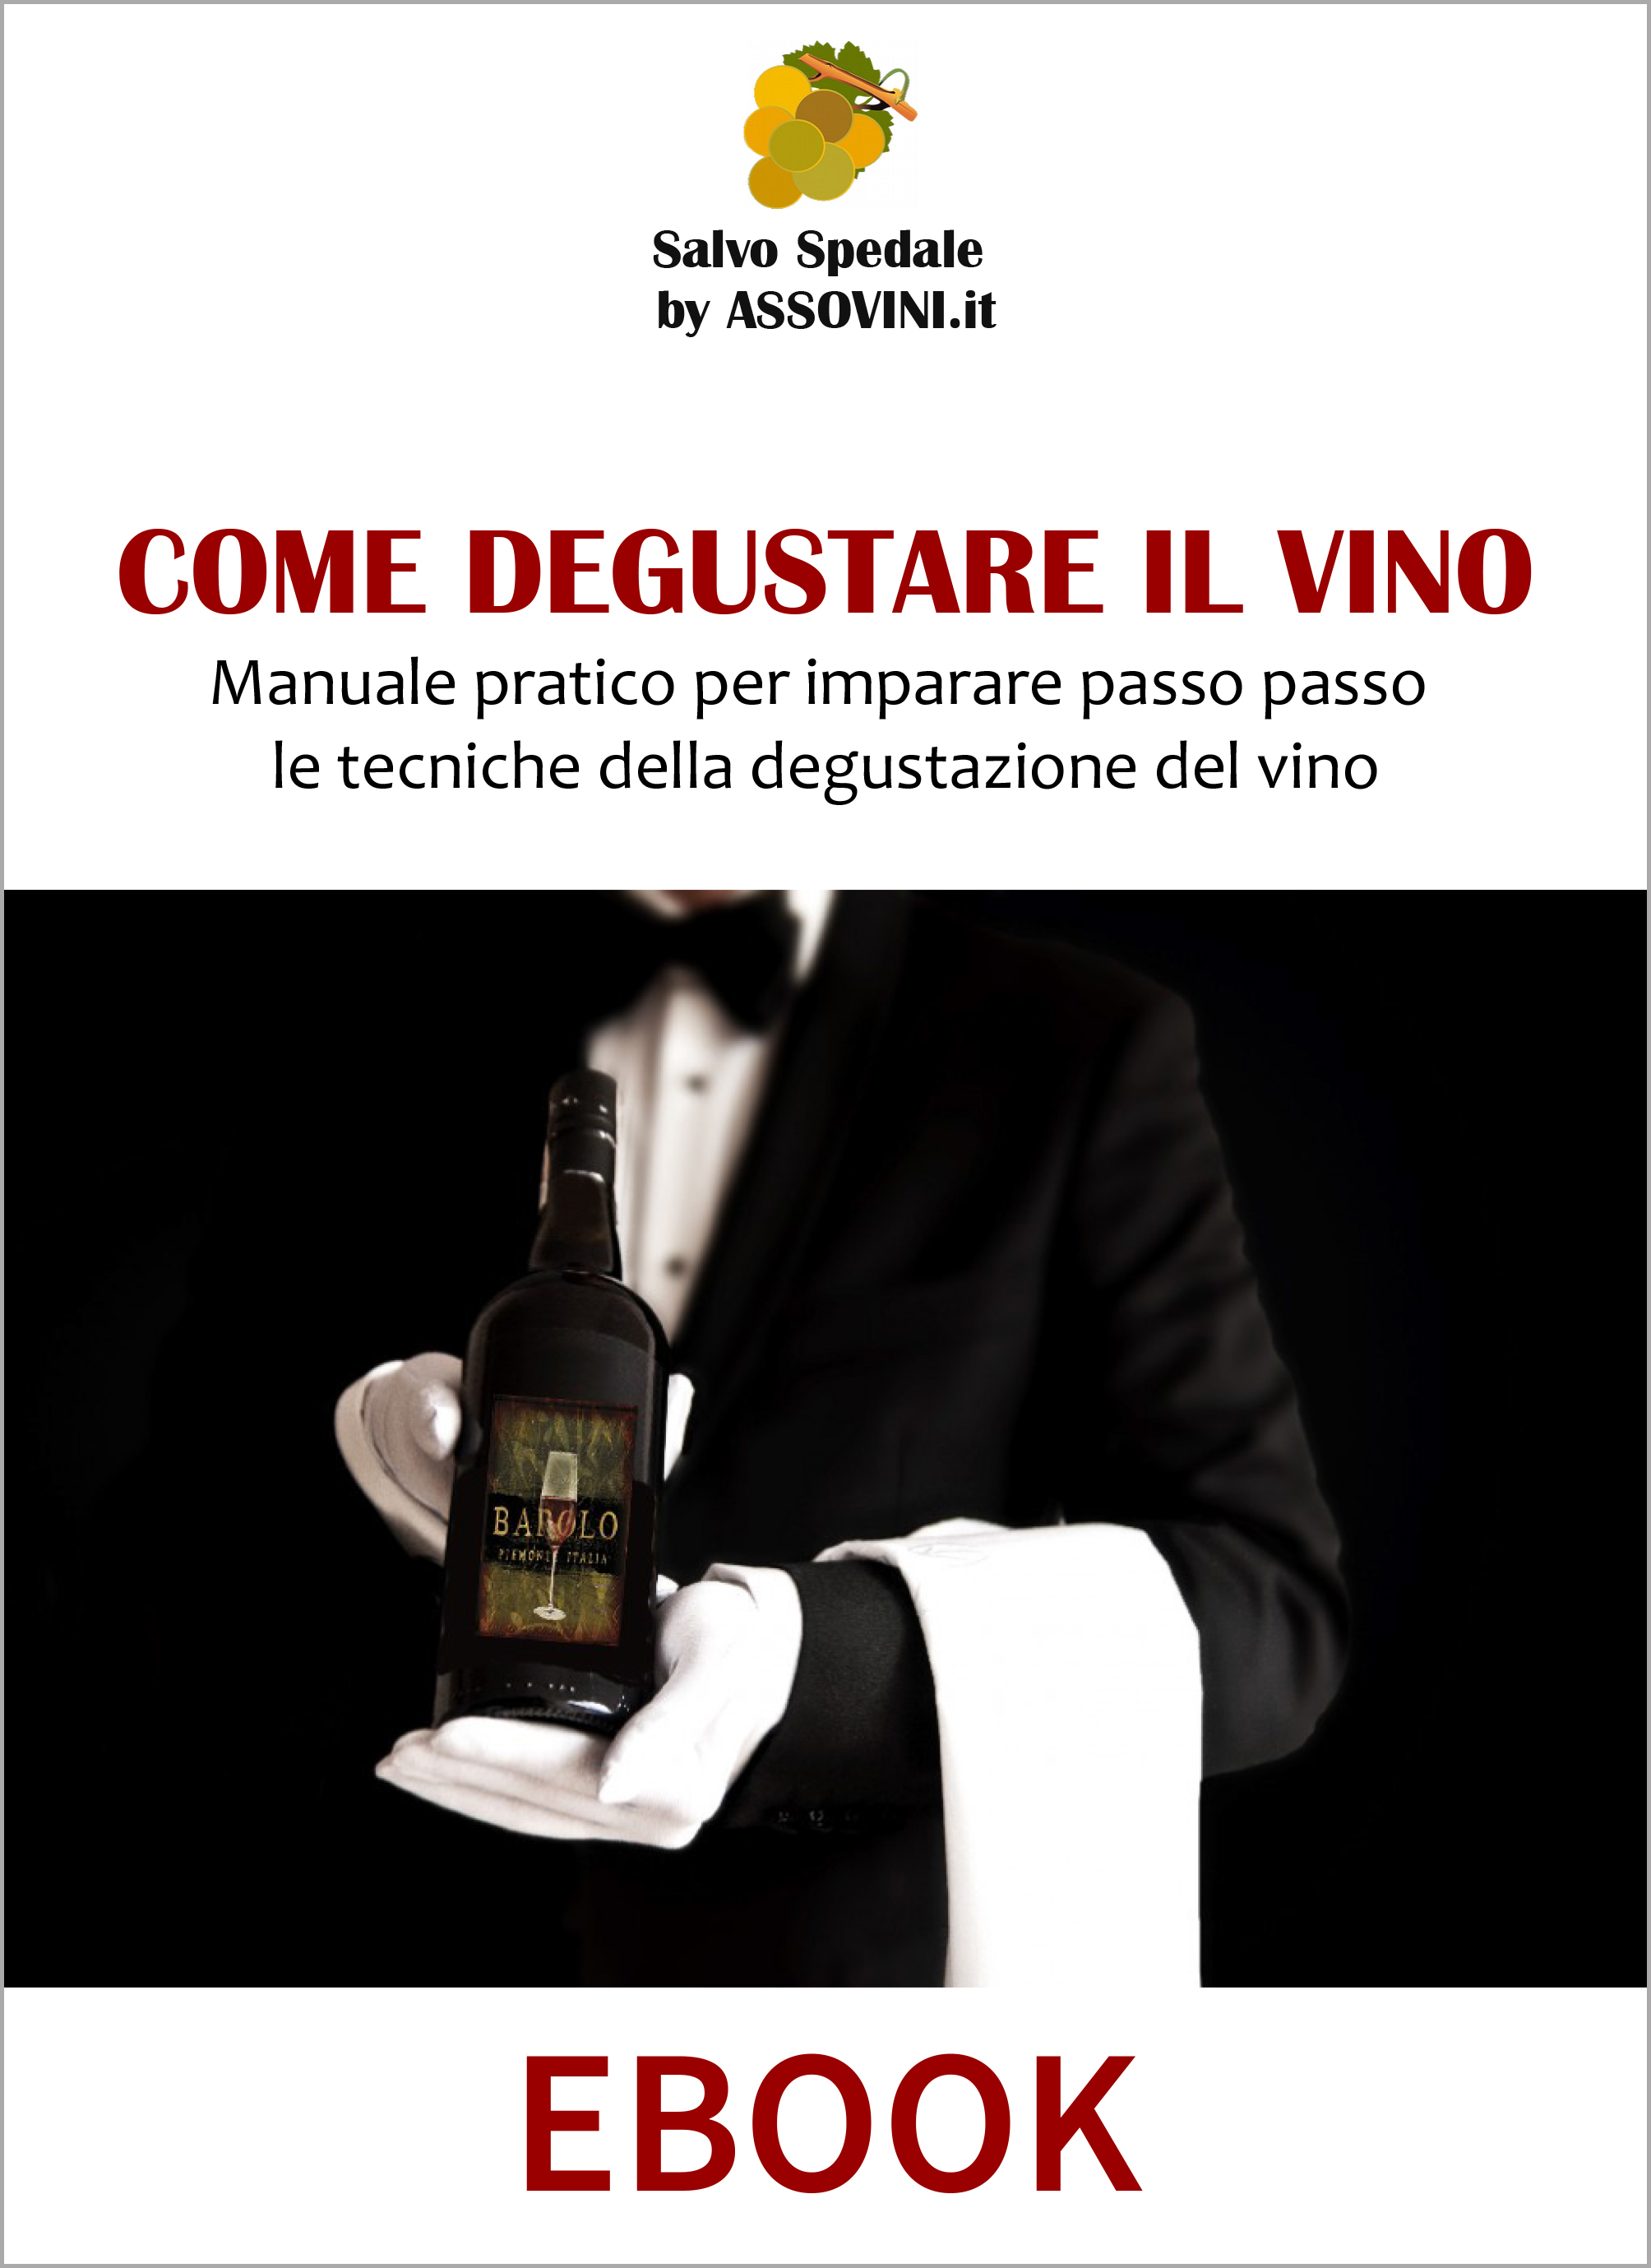 Come degustare il vino | Assovini.it